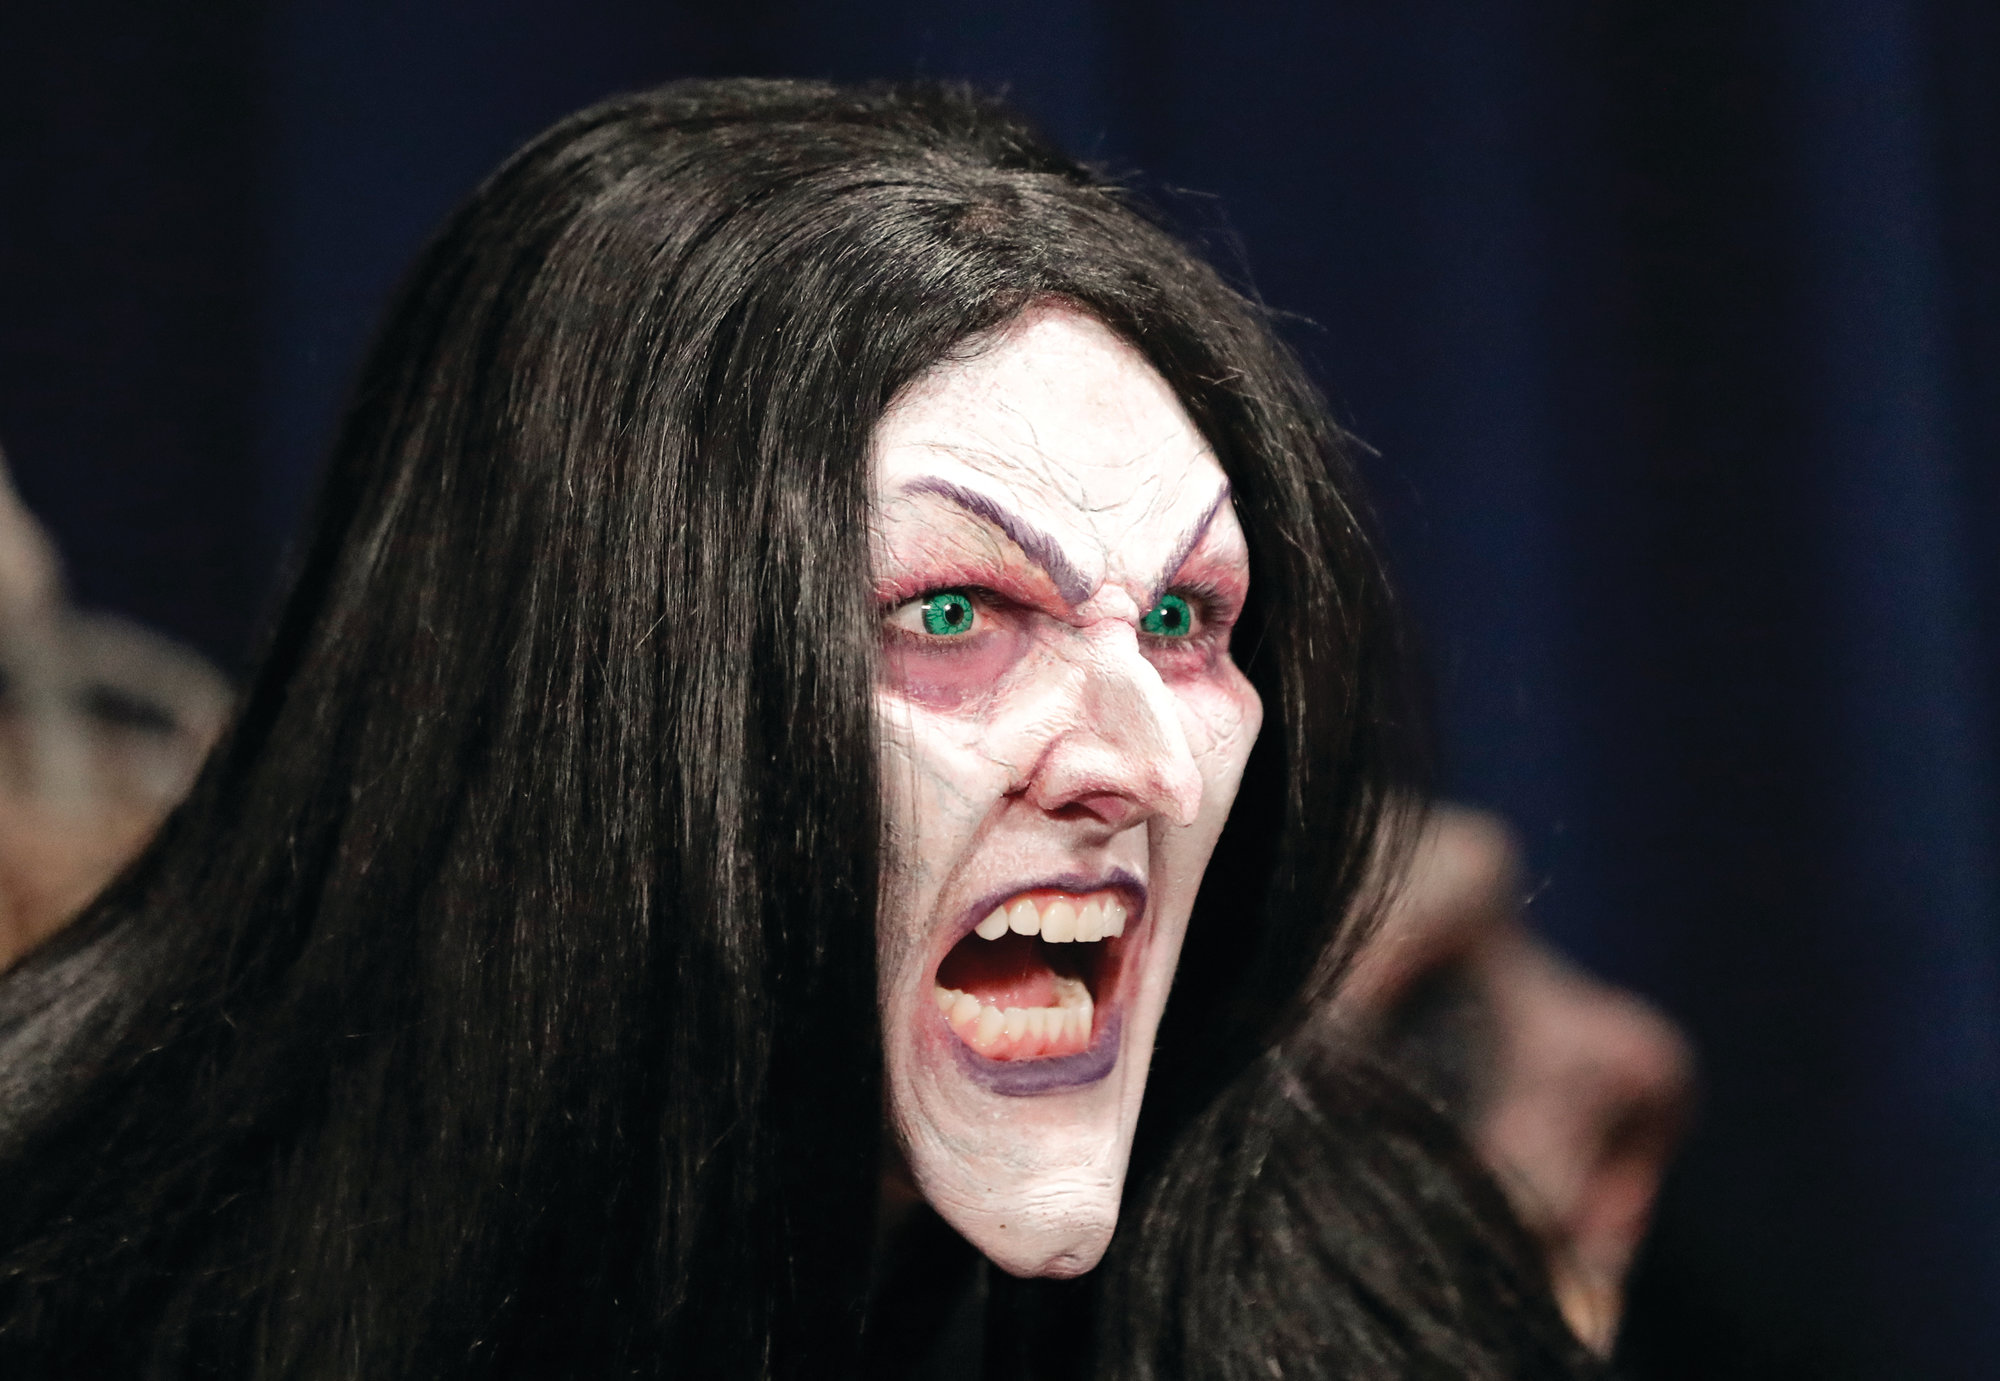 makeup, wig, cackle turn actress to witch | the sumter item